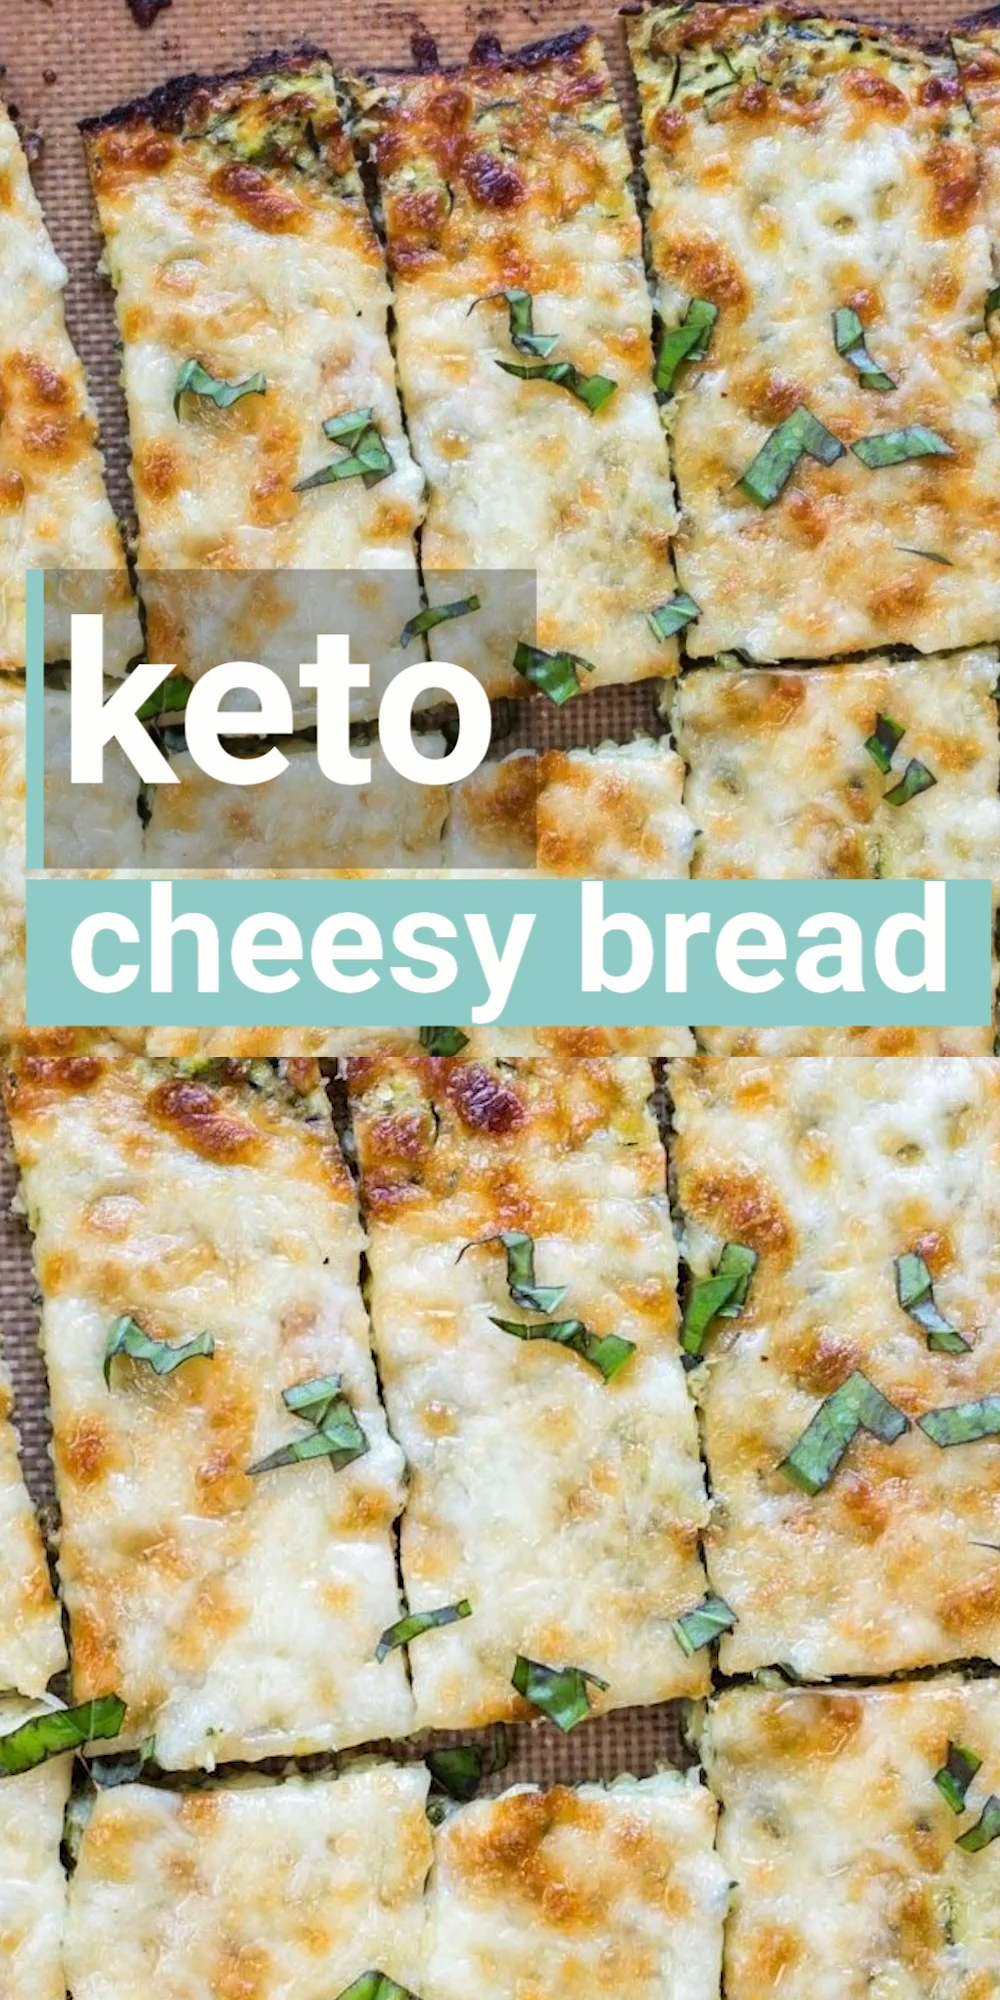 Photo of Keto Cheesy Bread